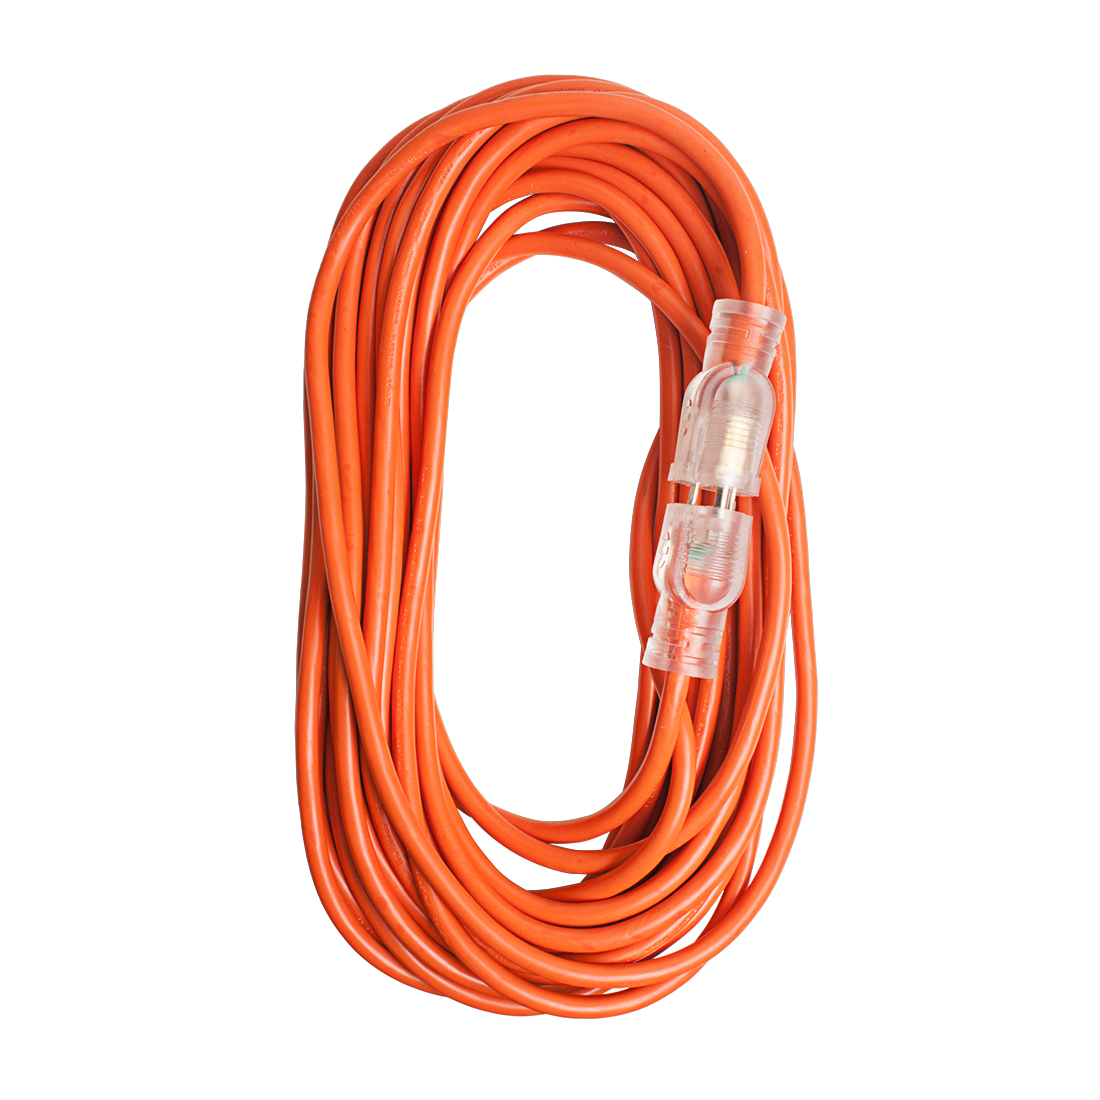 Medium Duty Lighted US Power Extension Cord Cable 13A 16AWG SJTW 50Ft Orange